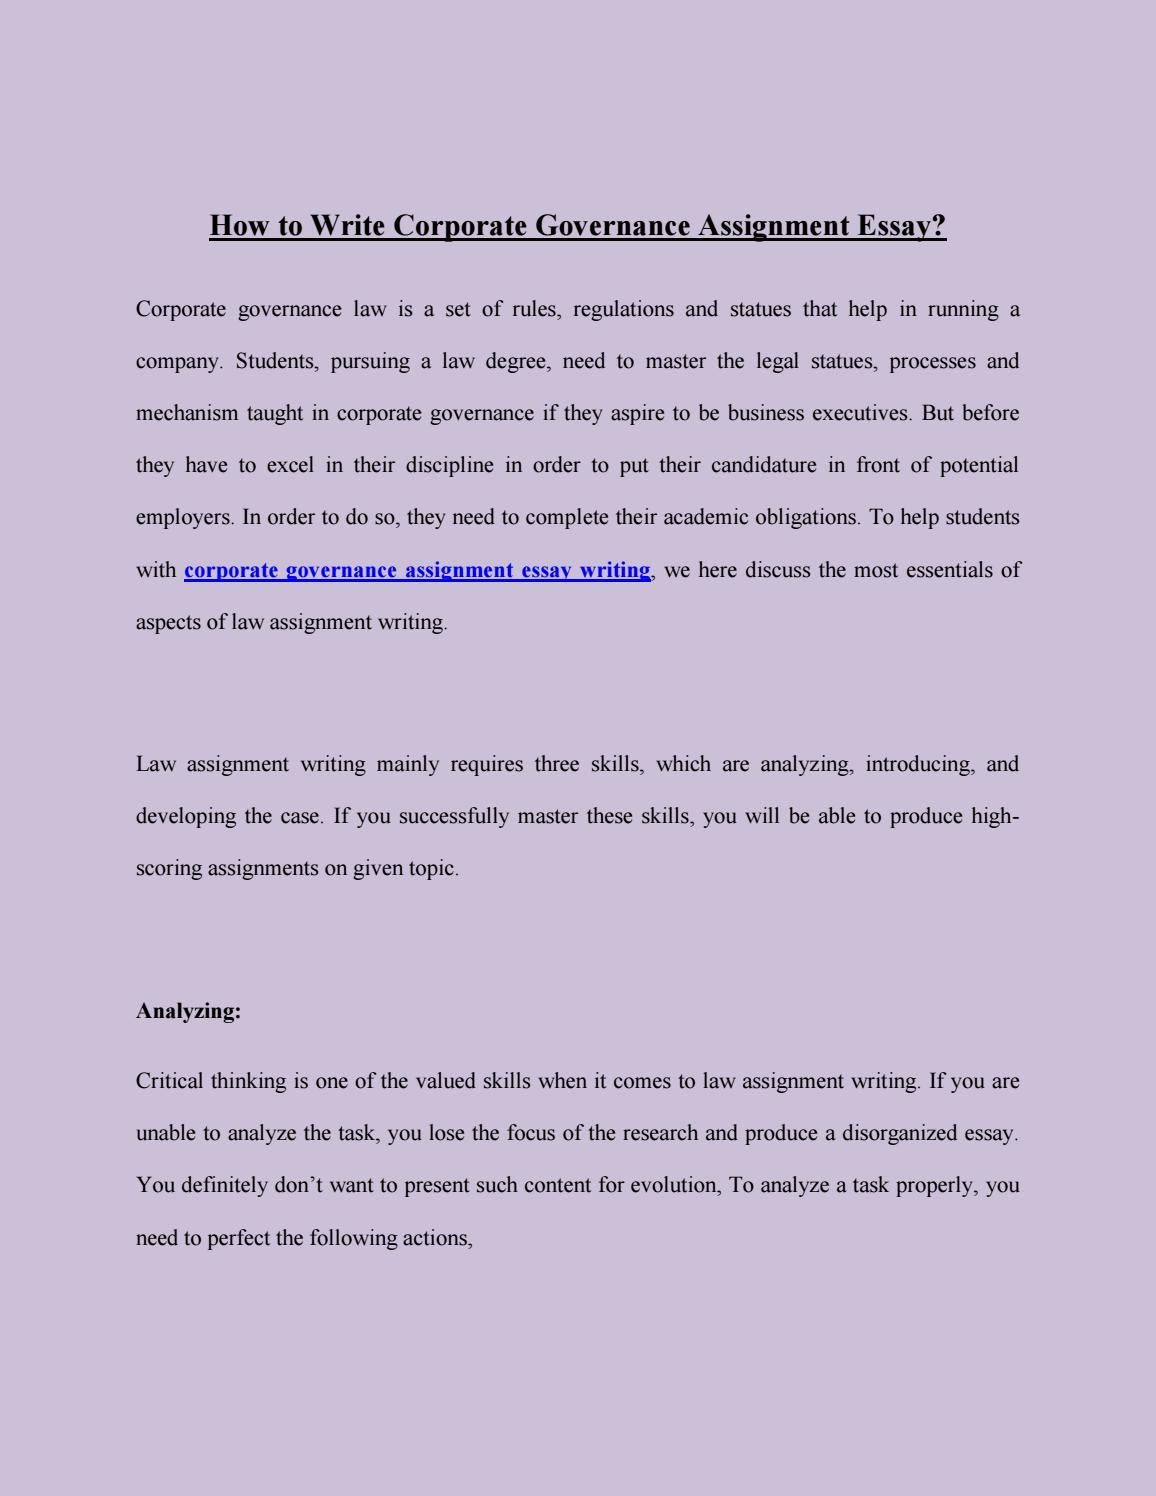 how to write corporate governance assignment essay by ameeliabrown how to write corporate governance assignment essay by ameeliabrown issuu